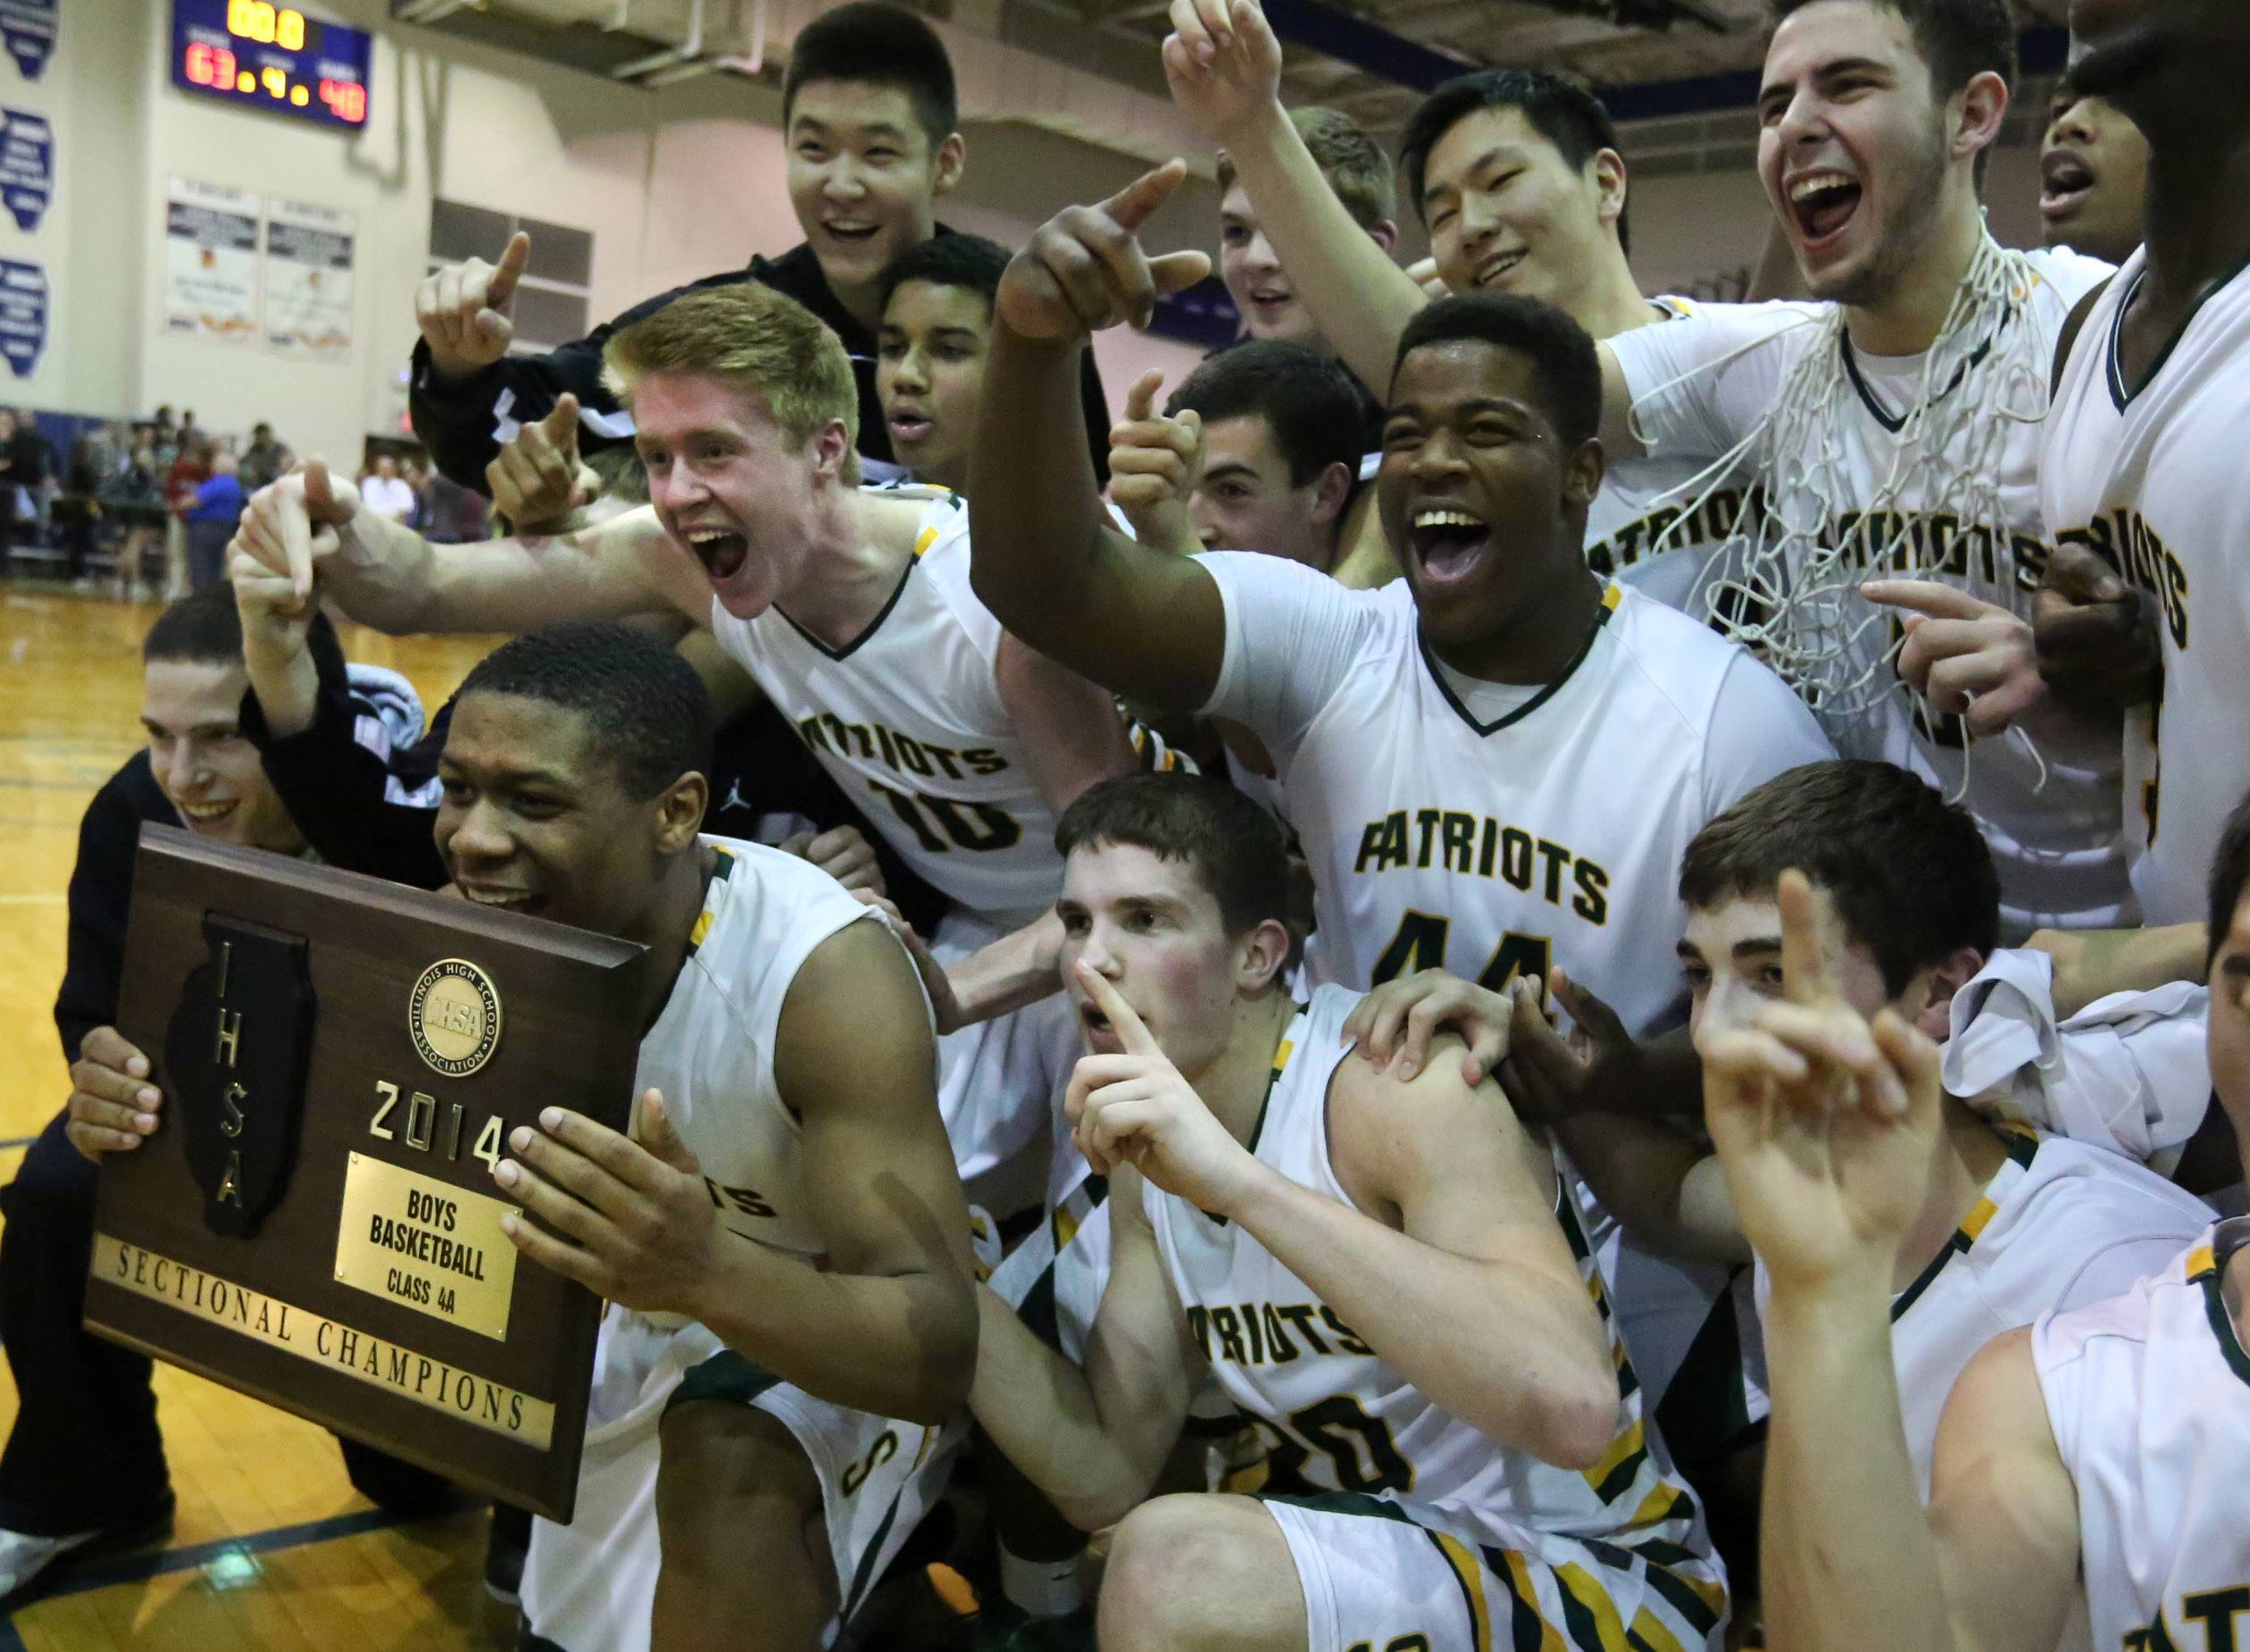 Stevenson's Matt Johnson, holding plaque, and teammates celebrate.